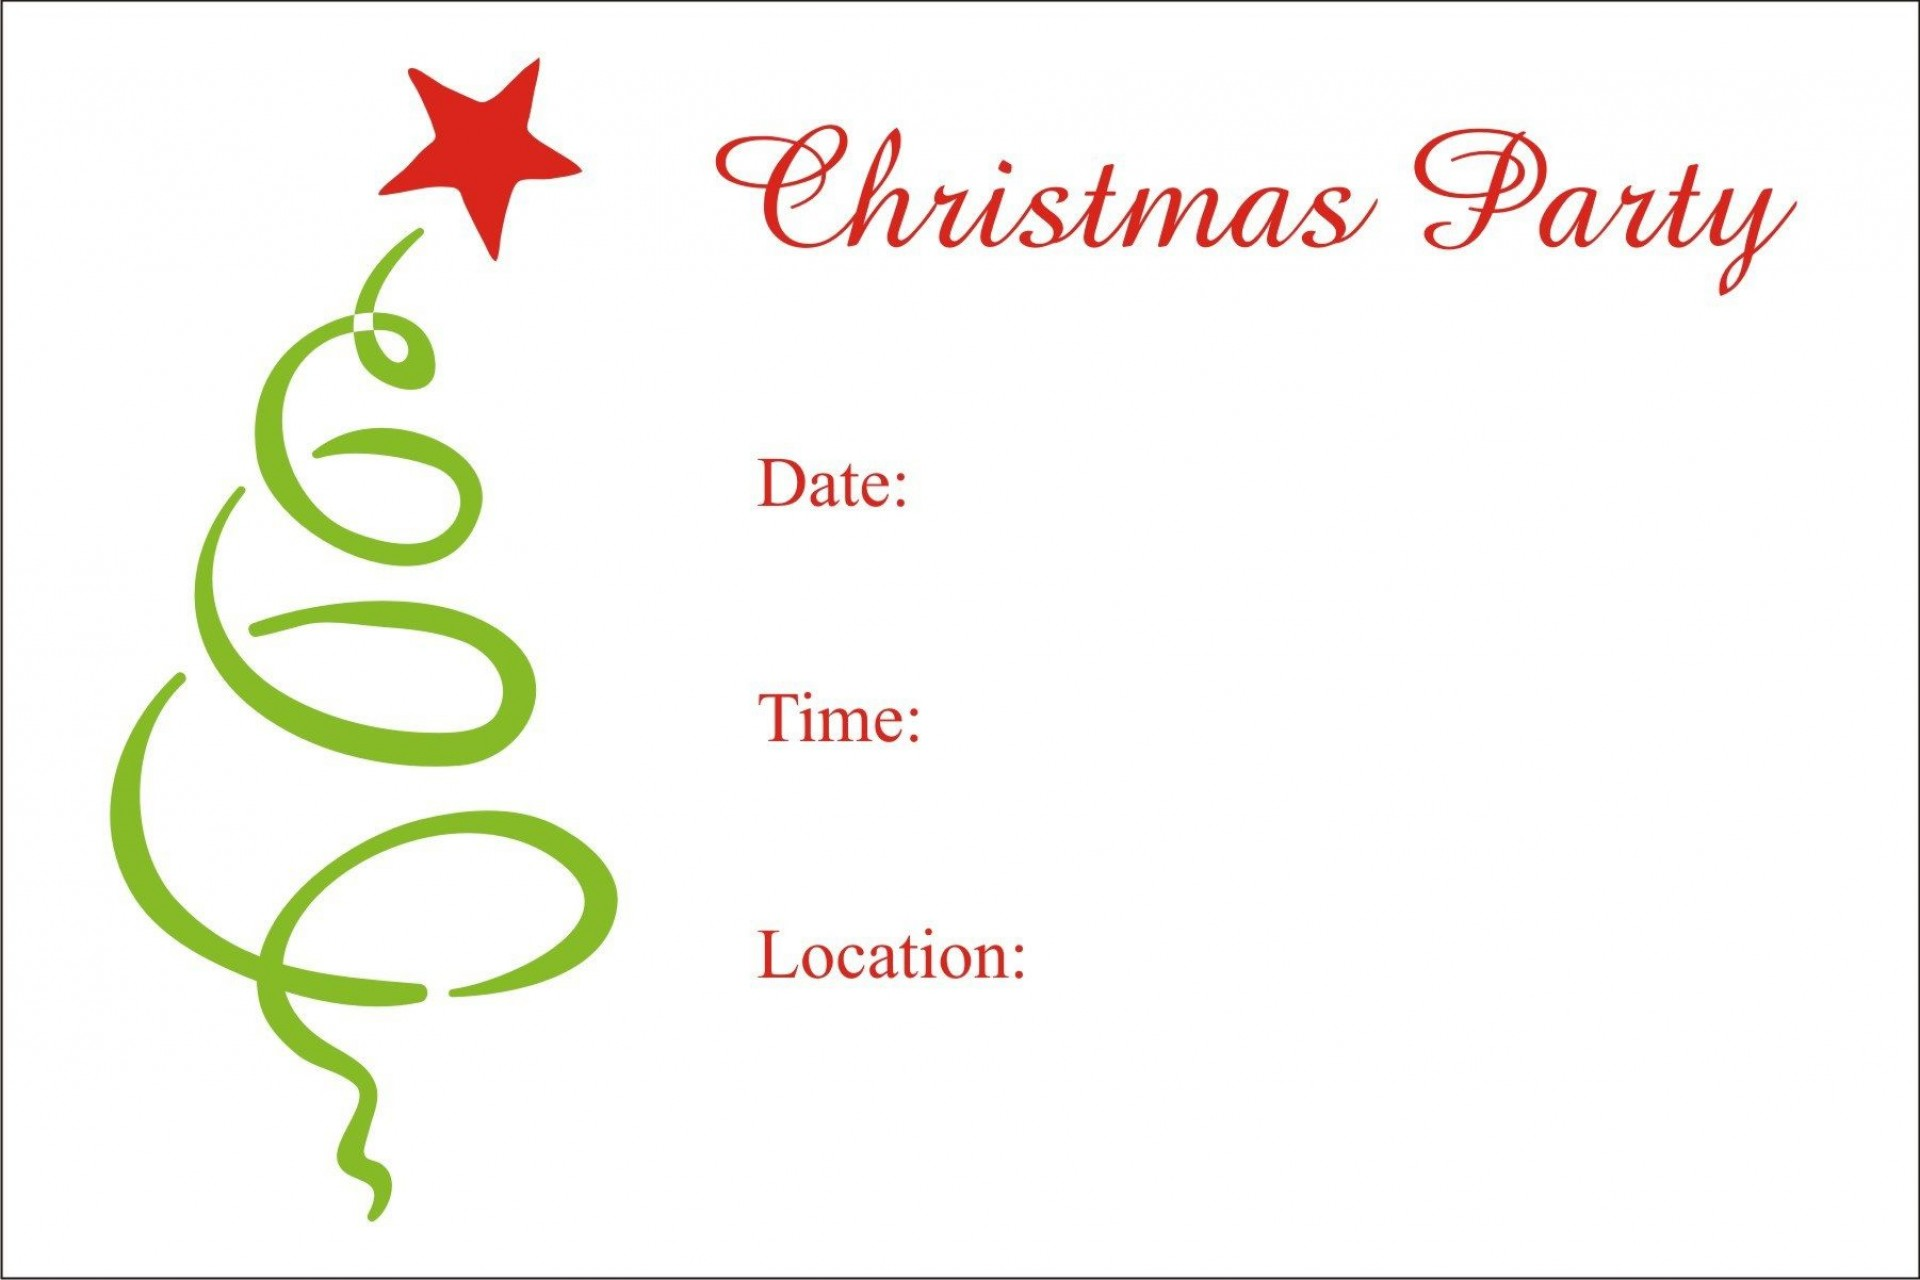 004 Fantastic Christma Party Invite Template Free Download Concept  Funny Invitation Holiday1920